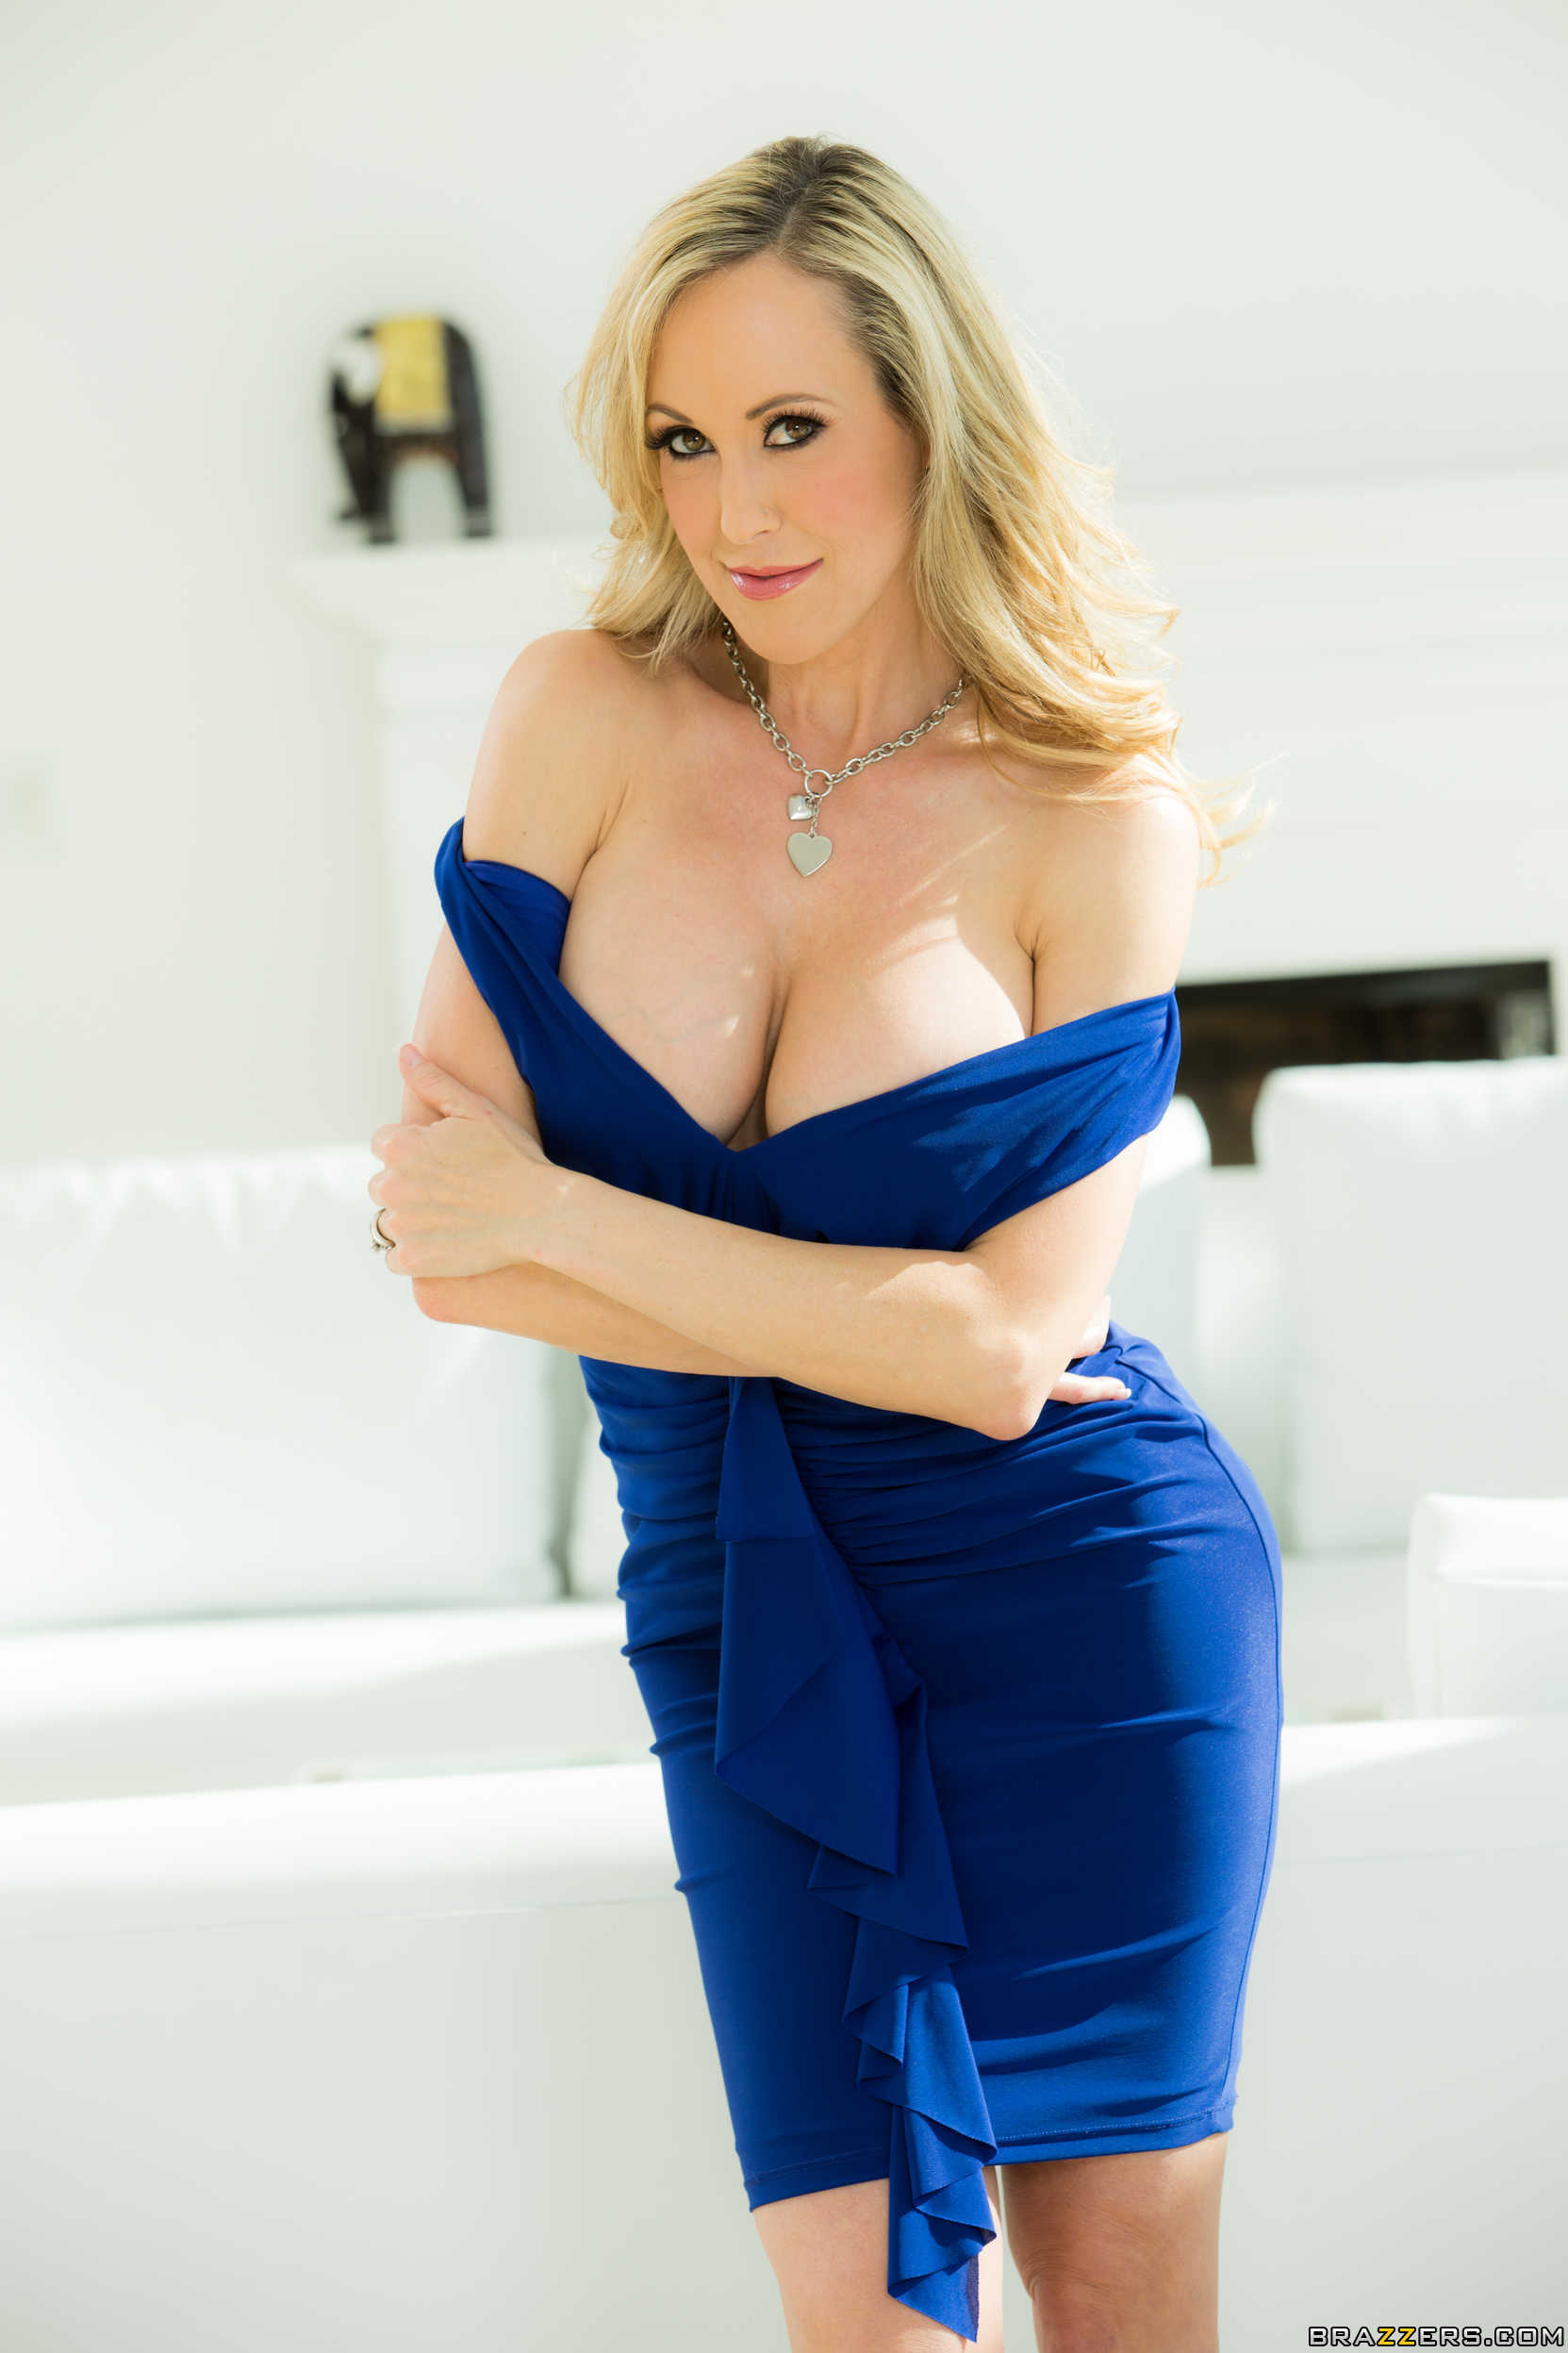 Brandi Love Wallpapers For IPhone